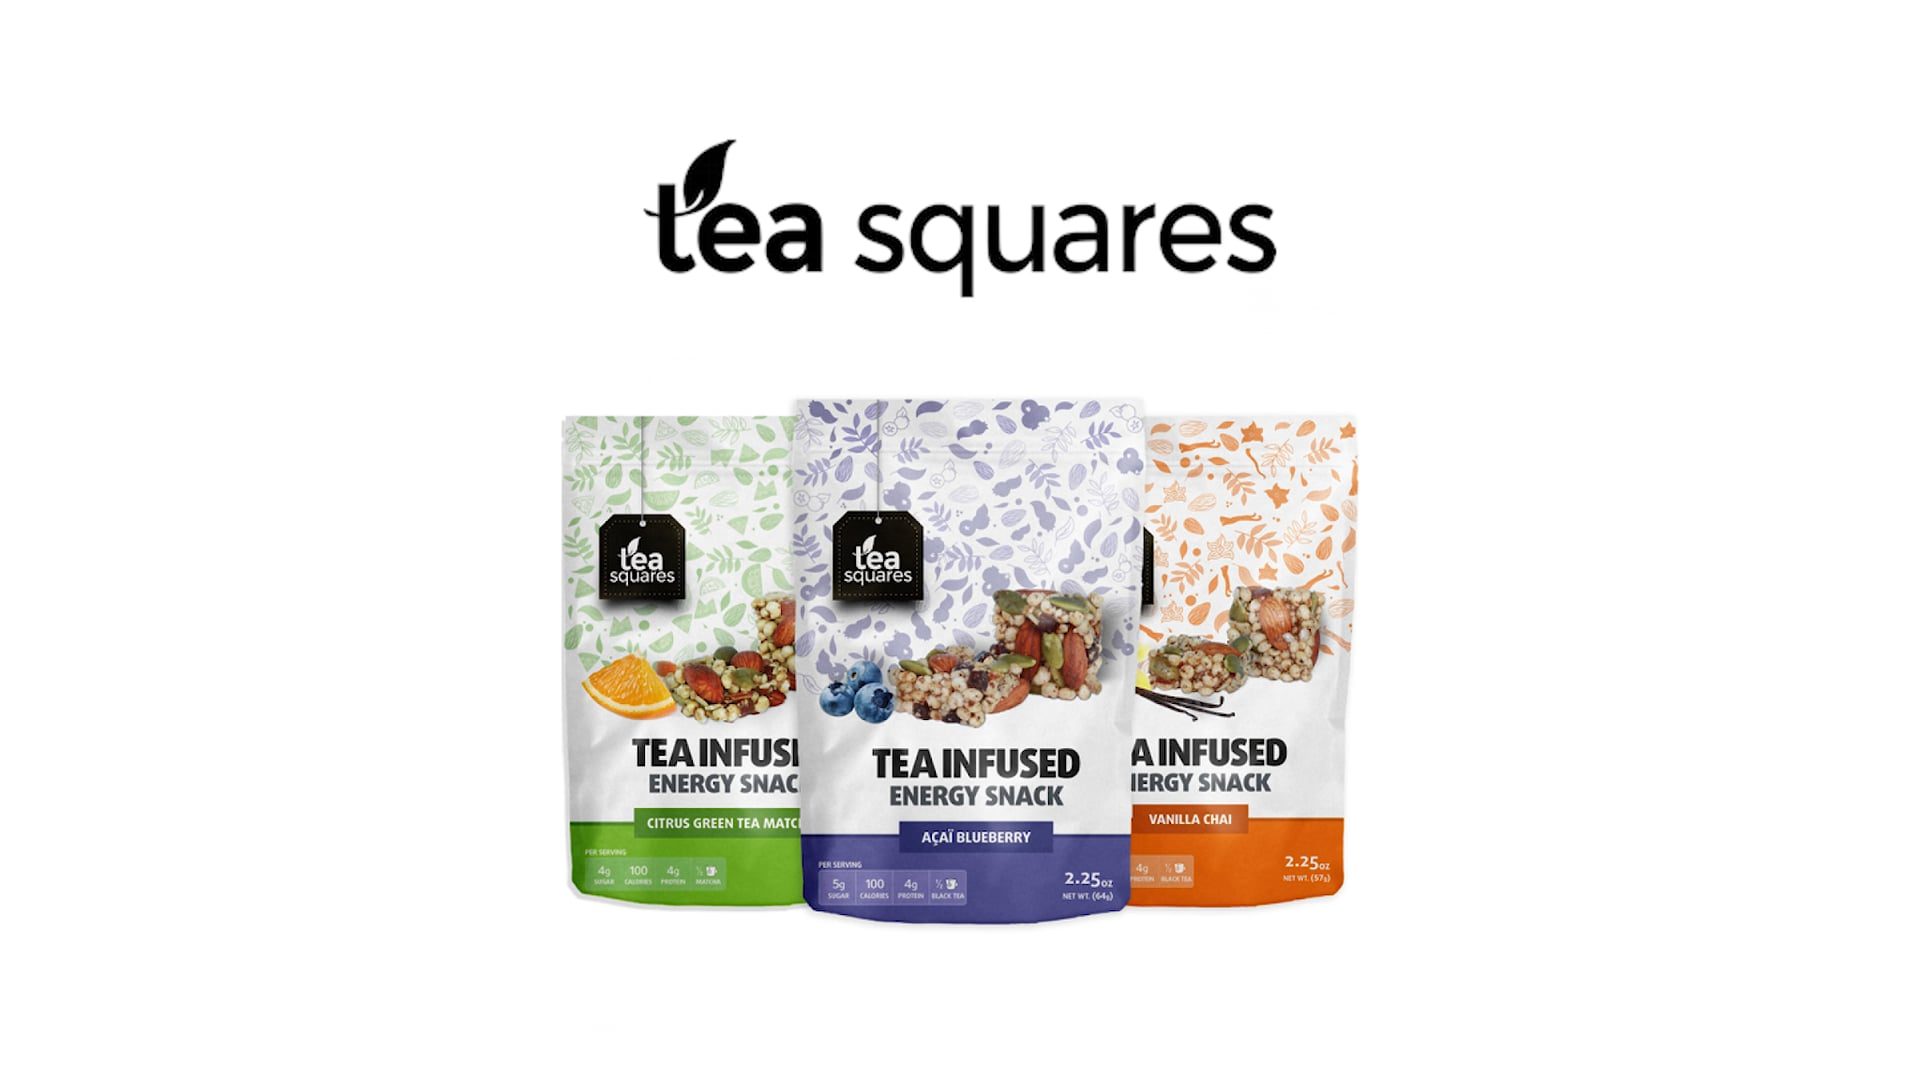 Commercial | Tea Squares - The Right Notes